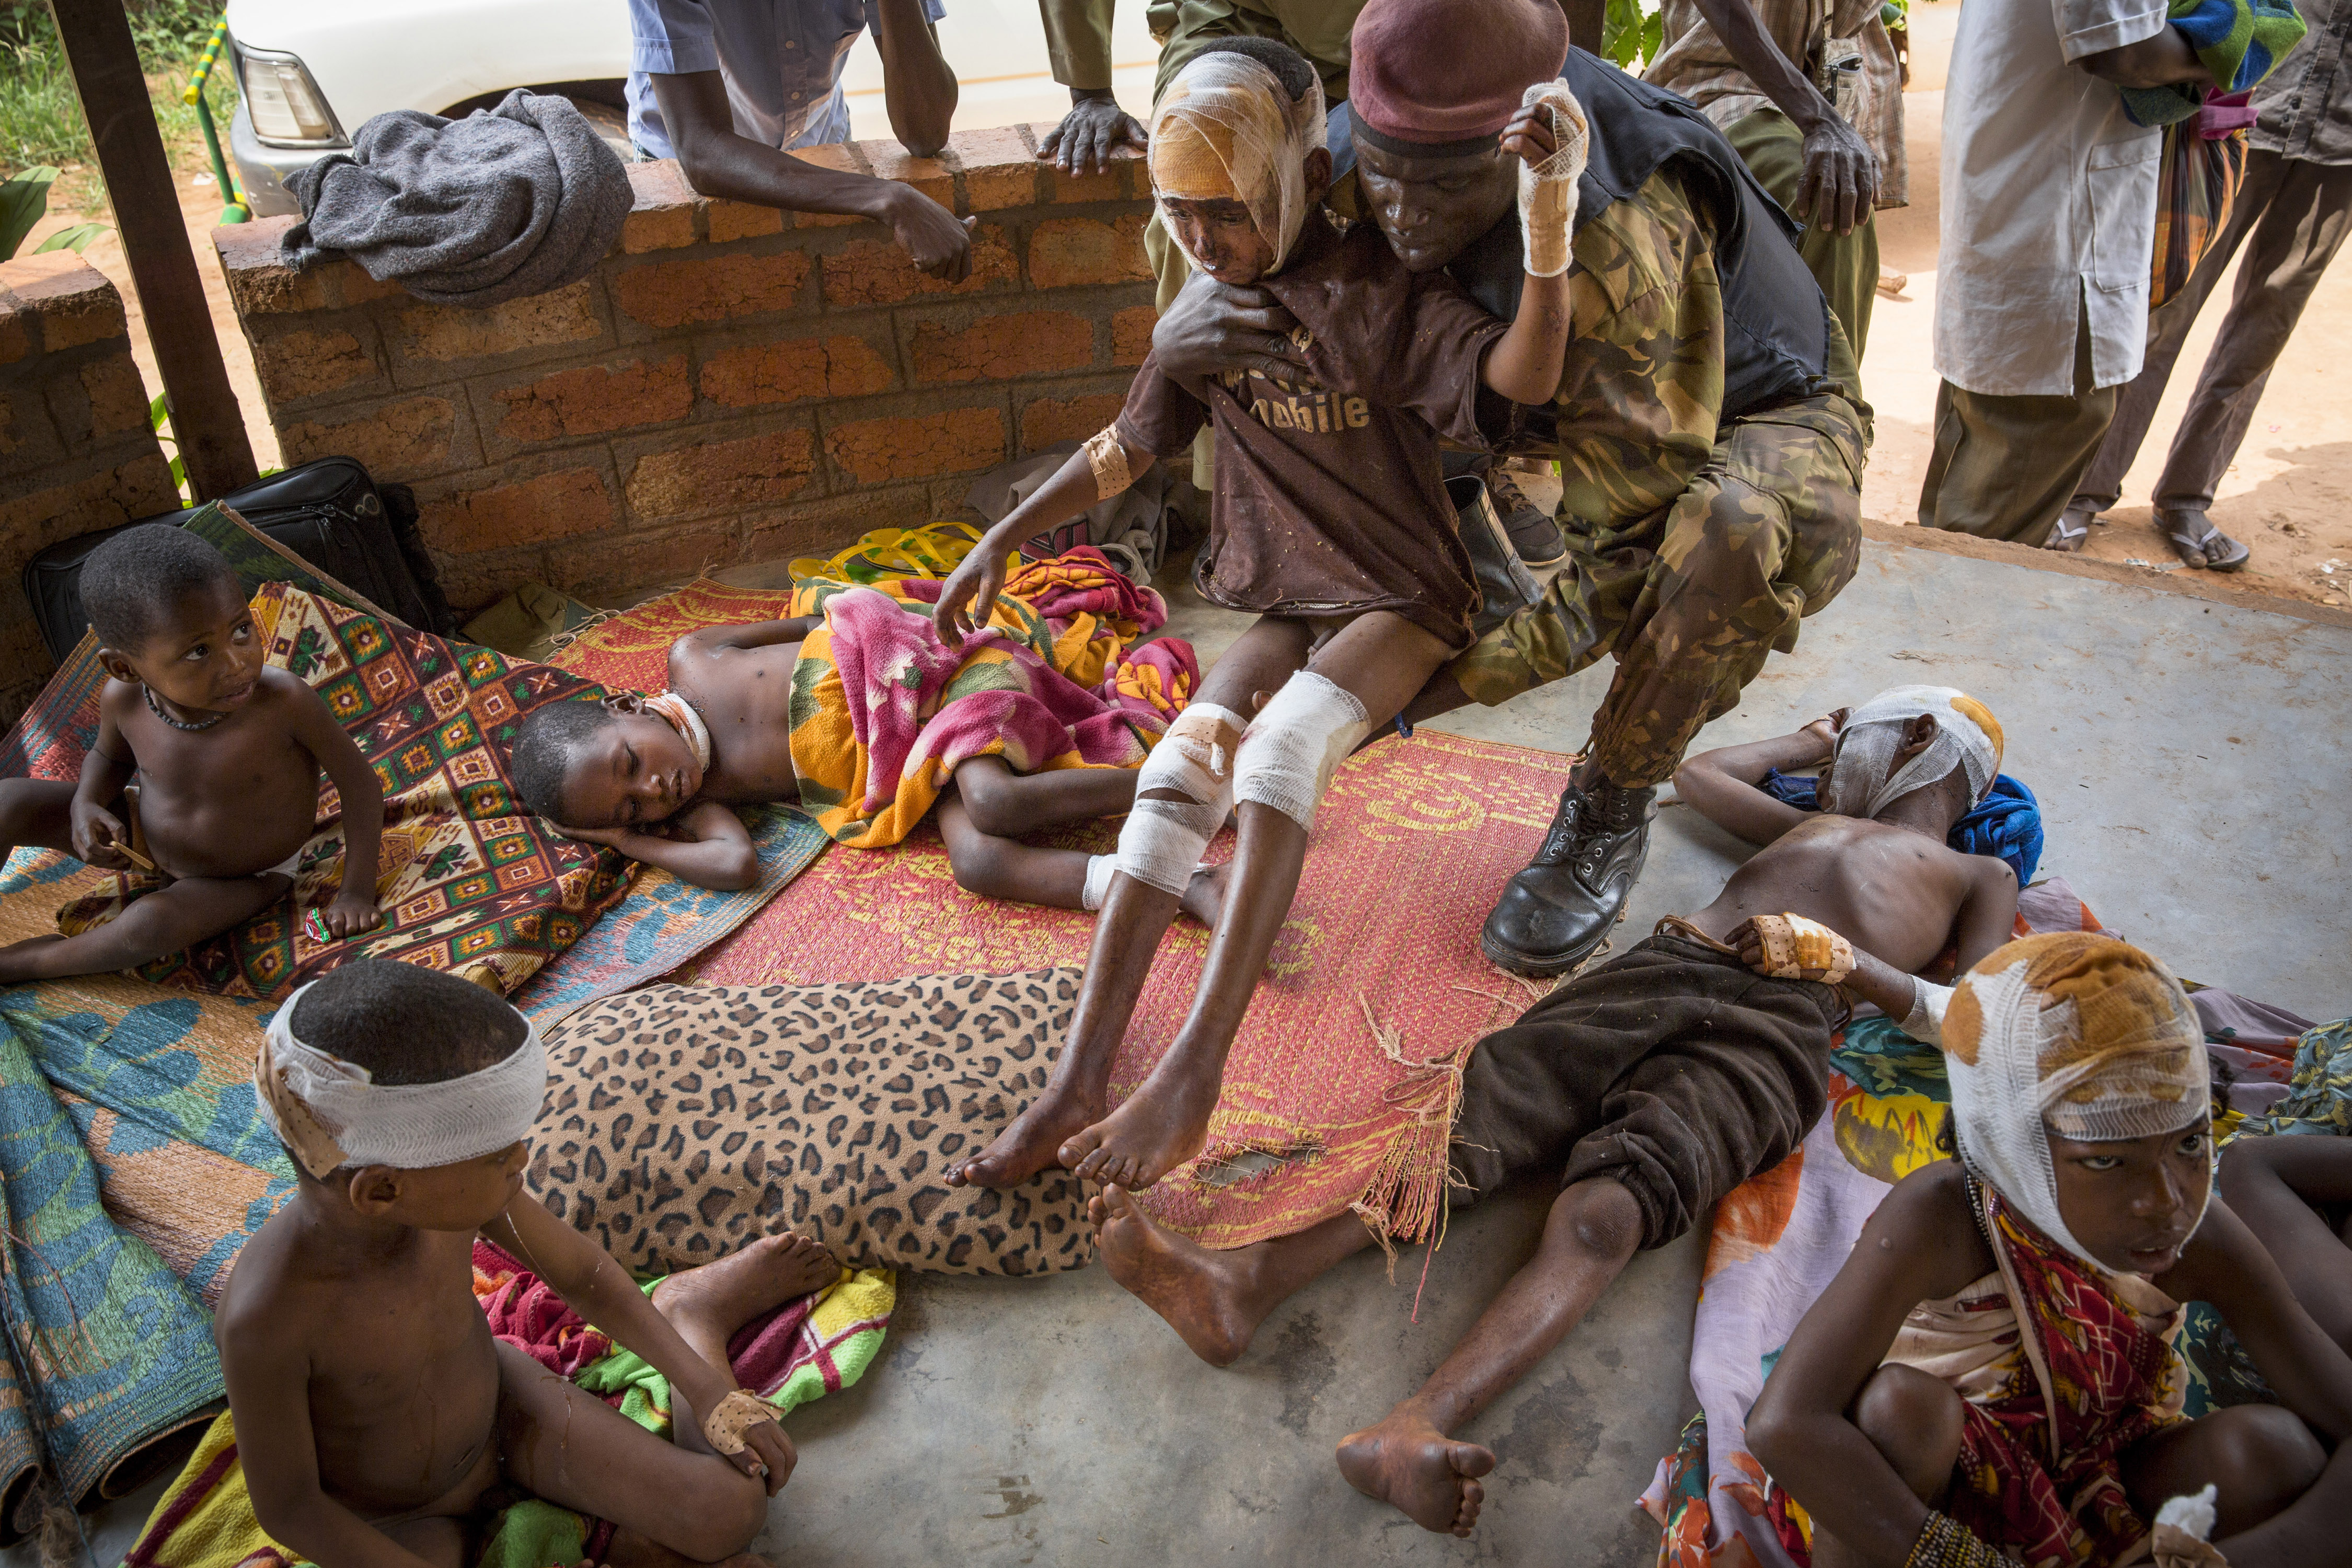 Dec. 3, 2013. Wounded Peul children in Bangui. According to the photographer, the children were kept in an army garrison for two hours before going to the hospital so that foreign journalists, government officials and a UN inspector could see and photograph them.